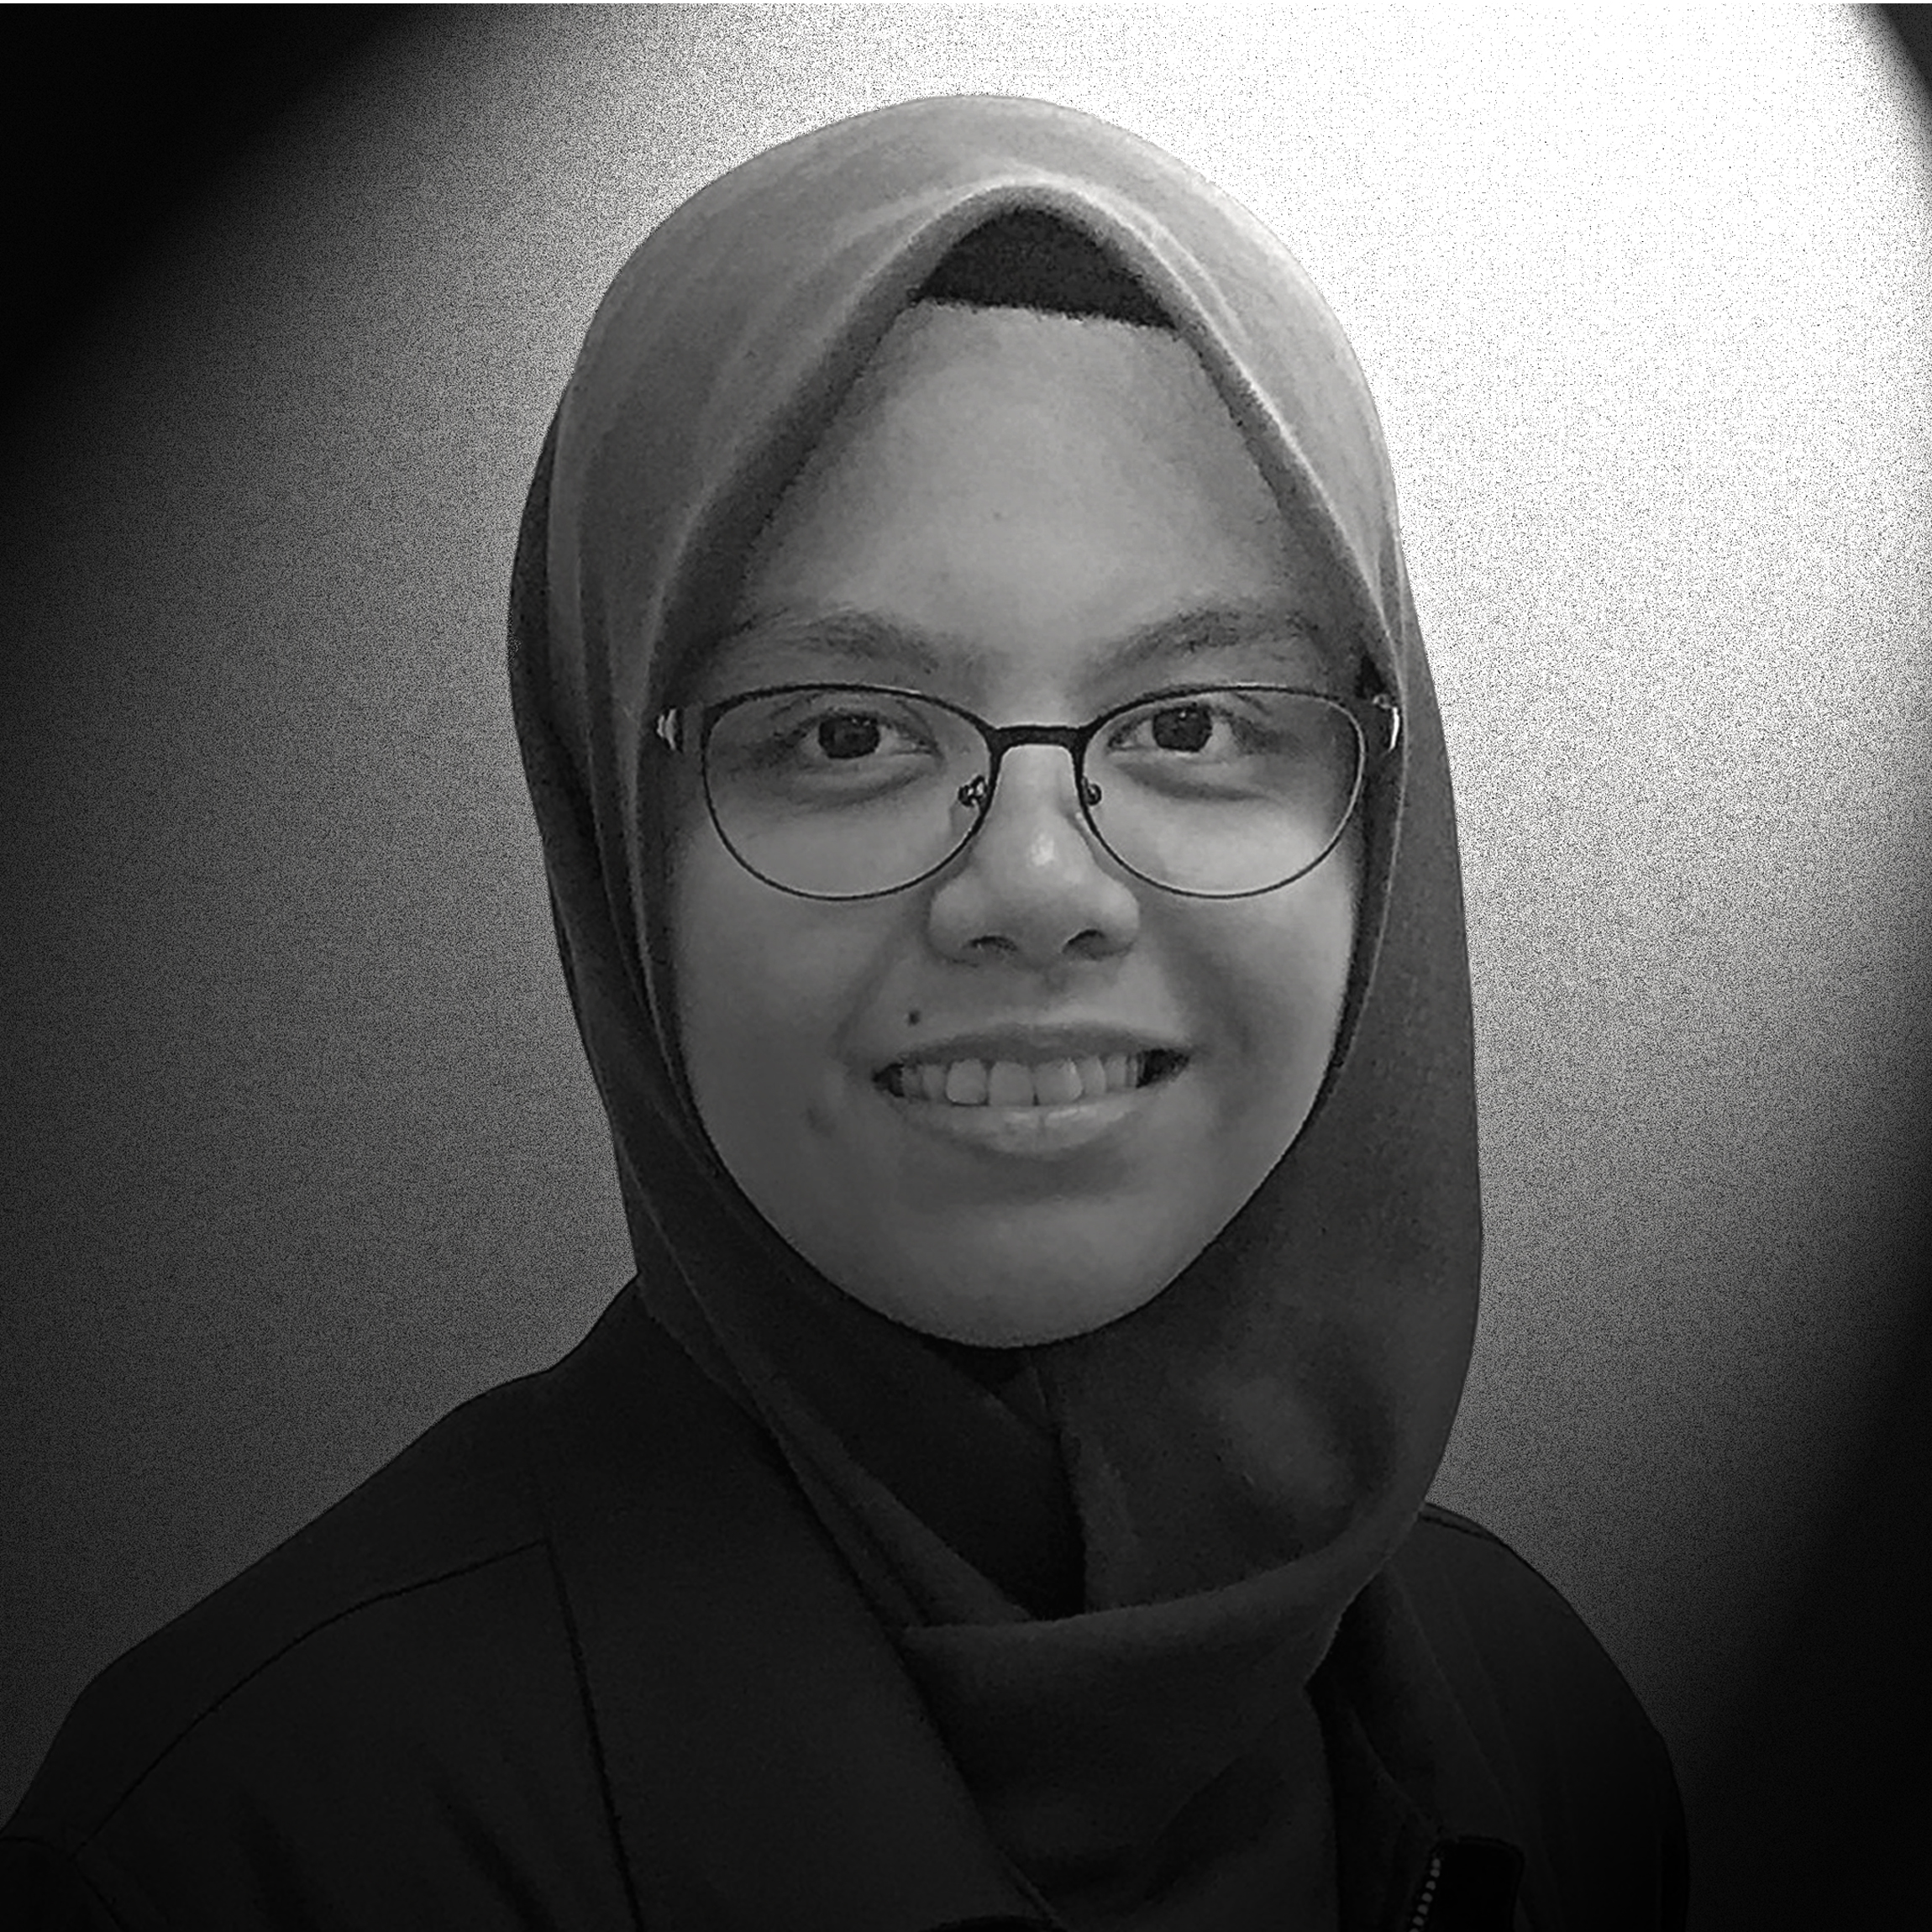 Mas Azalya - Applications Engineer   Mas joined Shimmer's Kuala Lumpur team in September 2018 as Application Engineer. She graduated from Universiti Teknologi Malaysia in 2018 with a Bachelors Degree in Biomedical Engineering where her final project was based around an integrated home-based biomedical embedded system with Android mobile application specialized in vital sign monitoring.  Outside of work, Mas can be found catching up on the latest wearable gadget technology news and blogs, especially in the area of health tracking and monitoring. Cats and coffee are a big part of her life, and in her free time, she enjoys spending time in the gym, running and playing badminton.